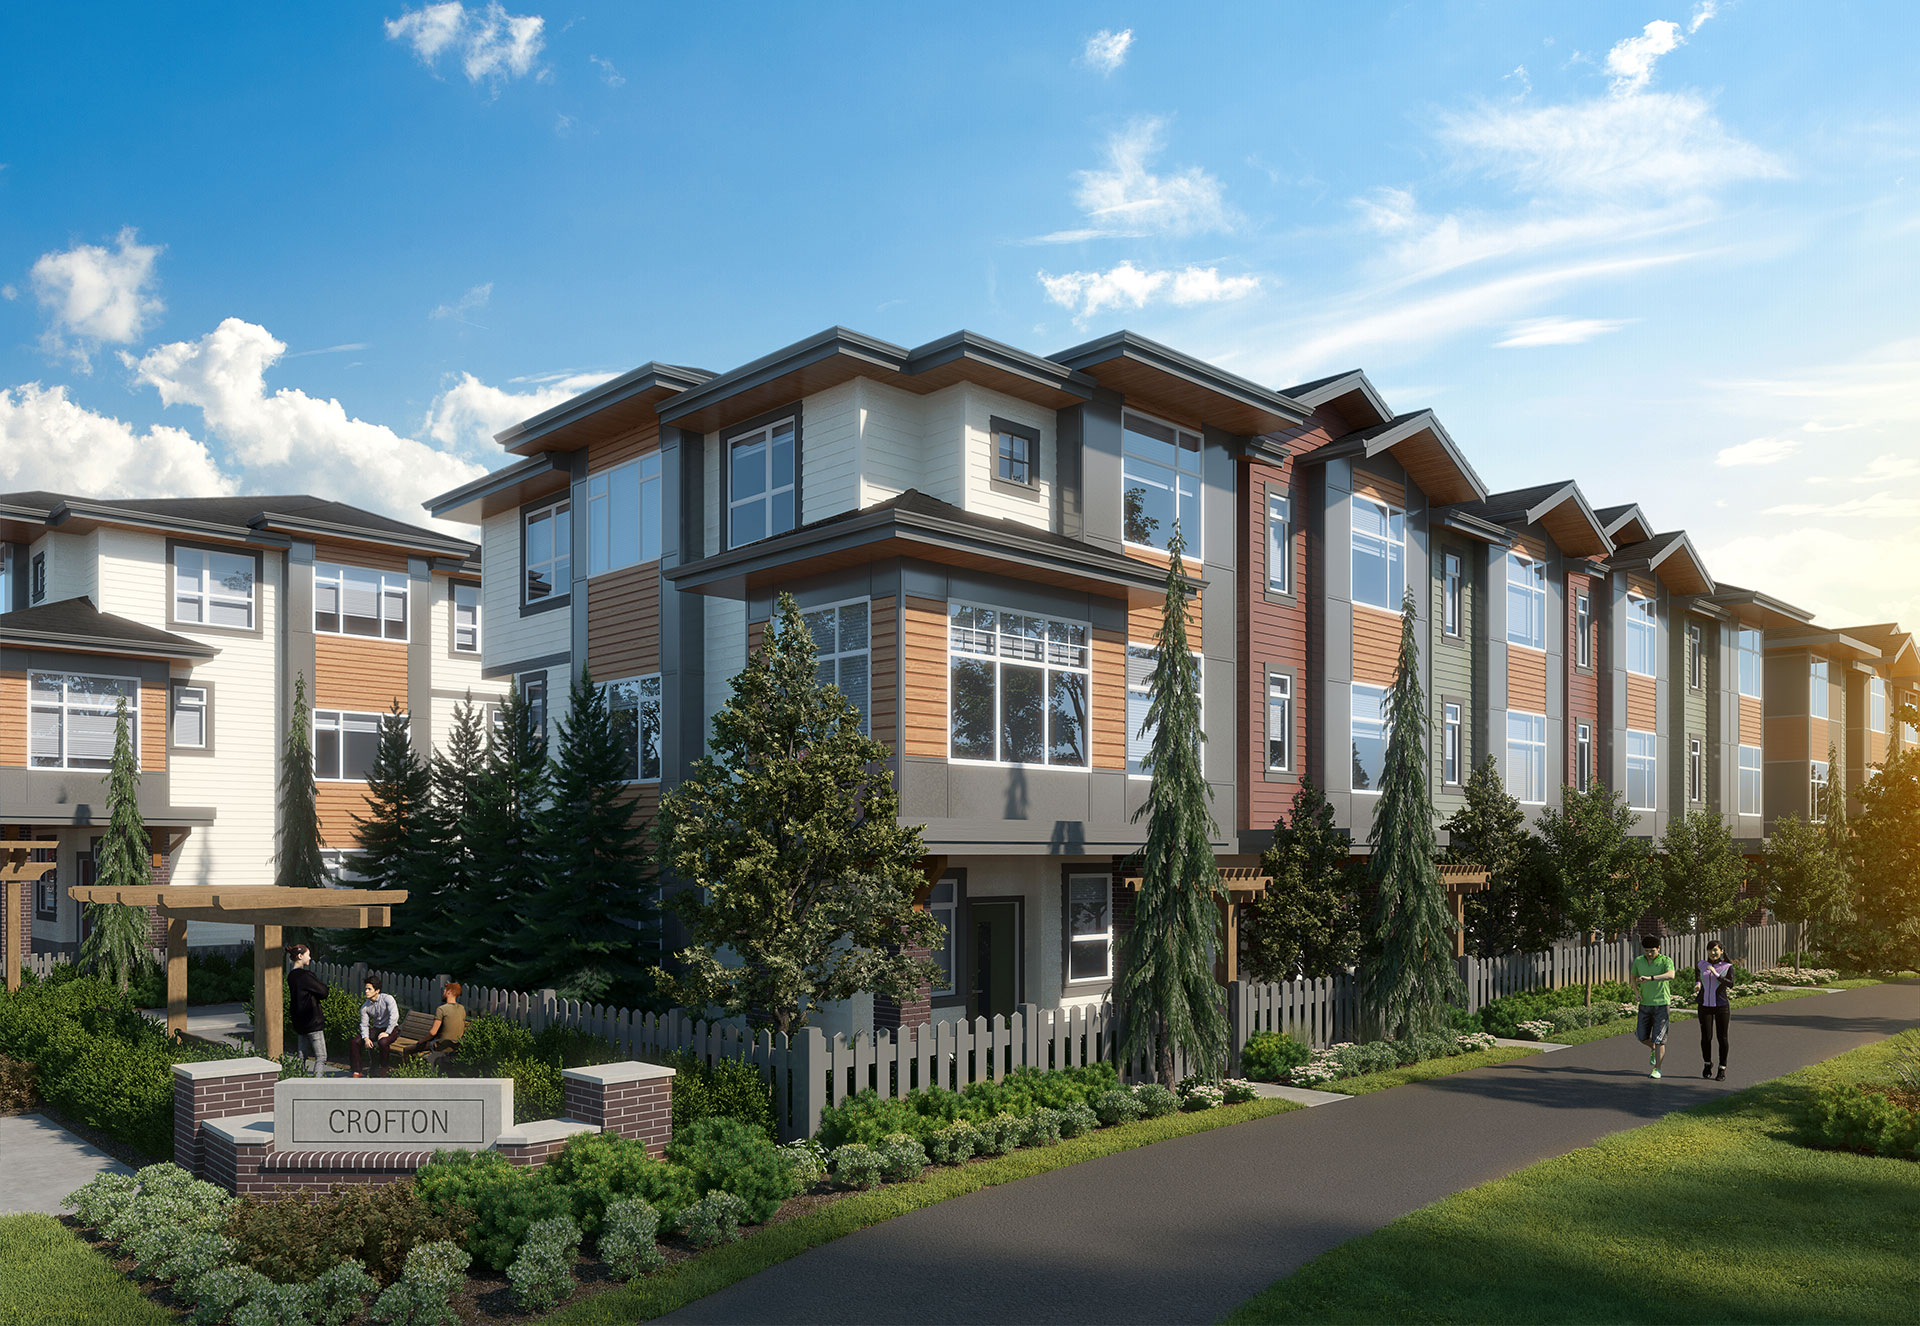 Crofton By Atrium Group – Plans, Prices, Availability